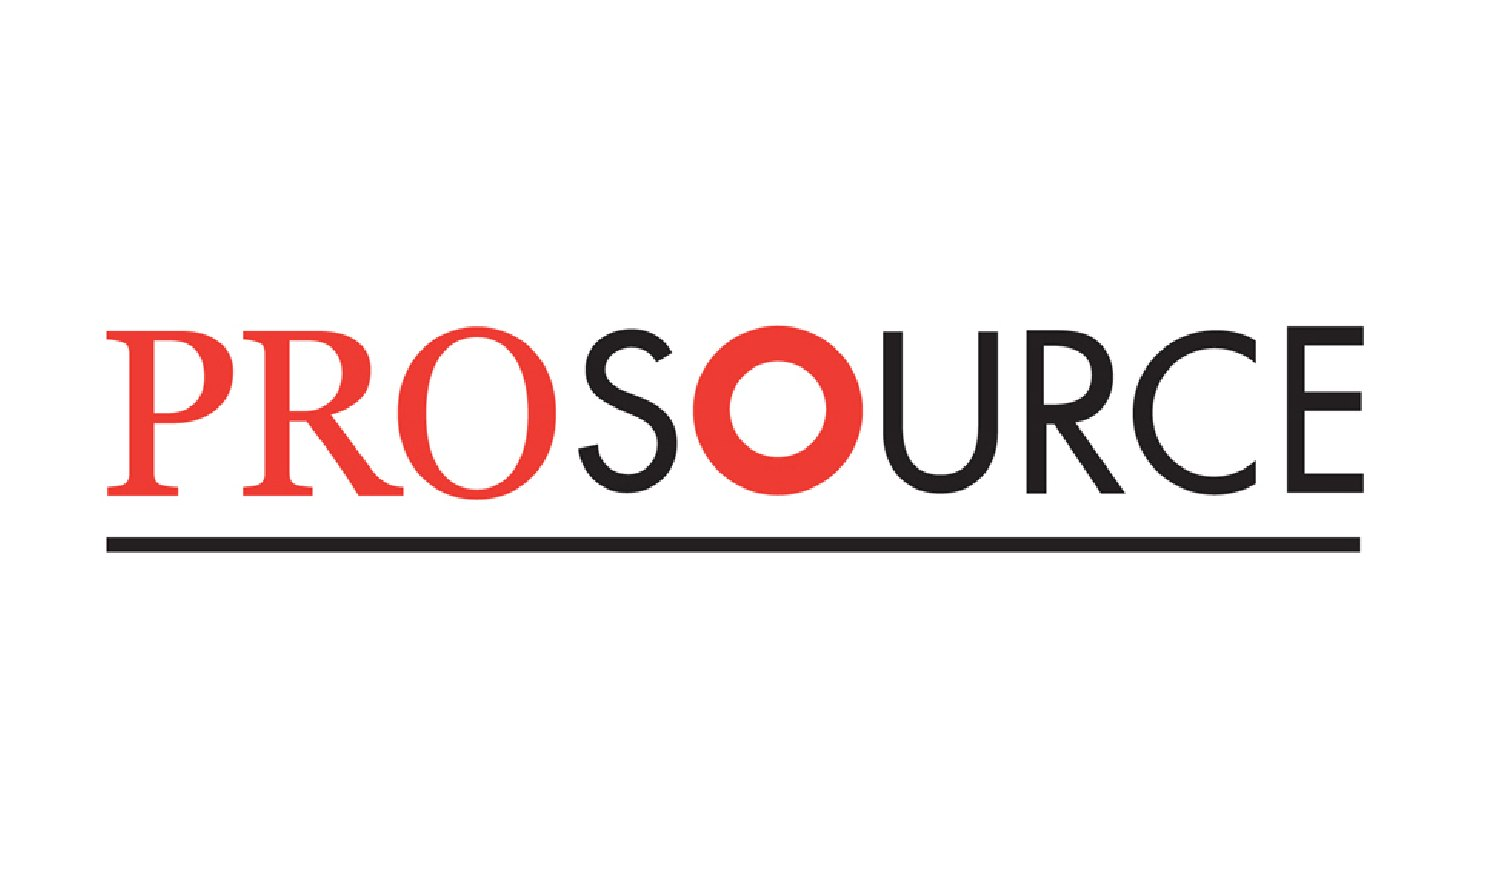 Prosource sponsor logo